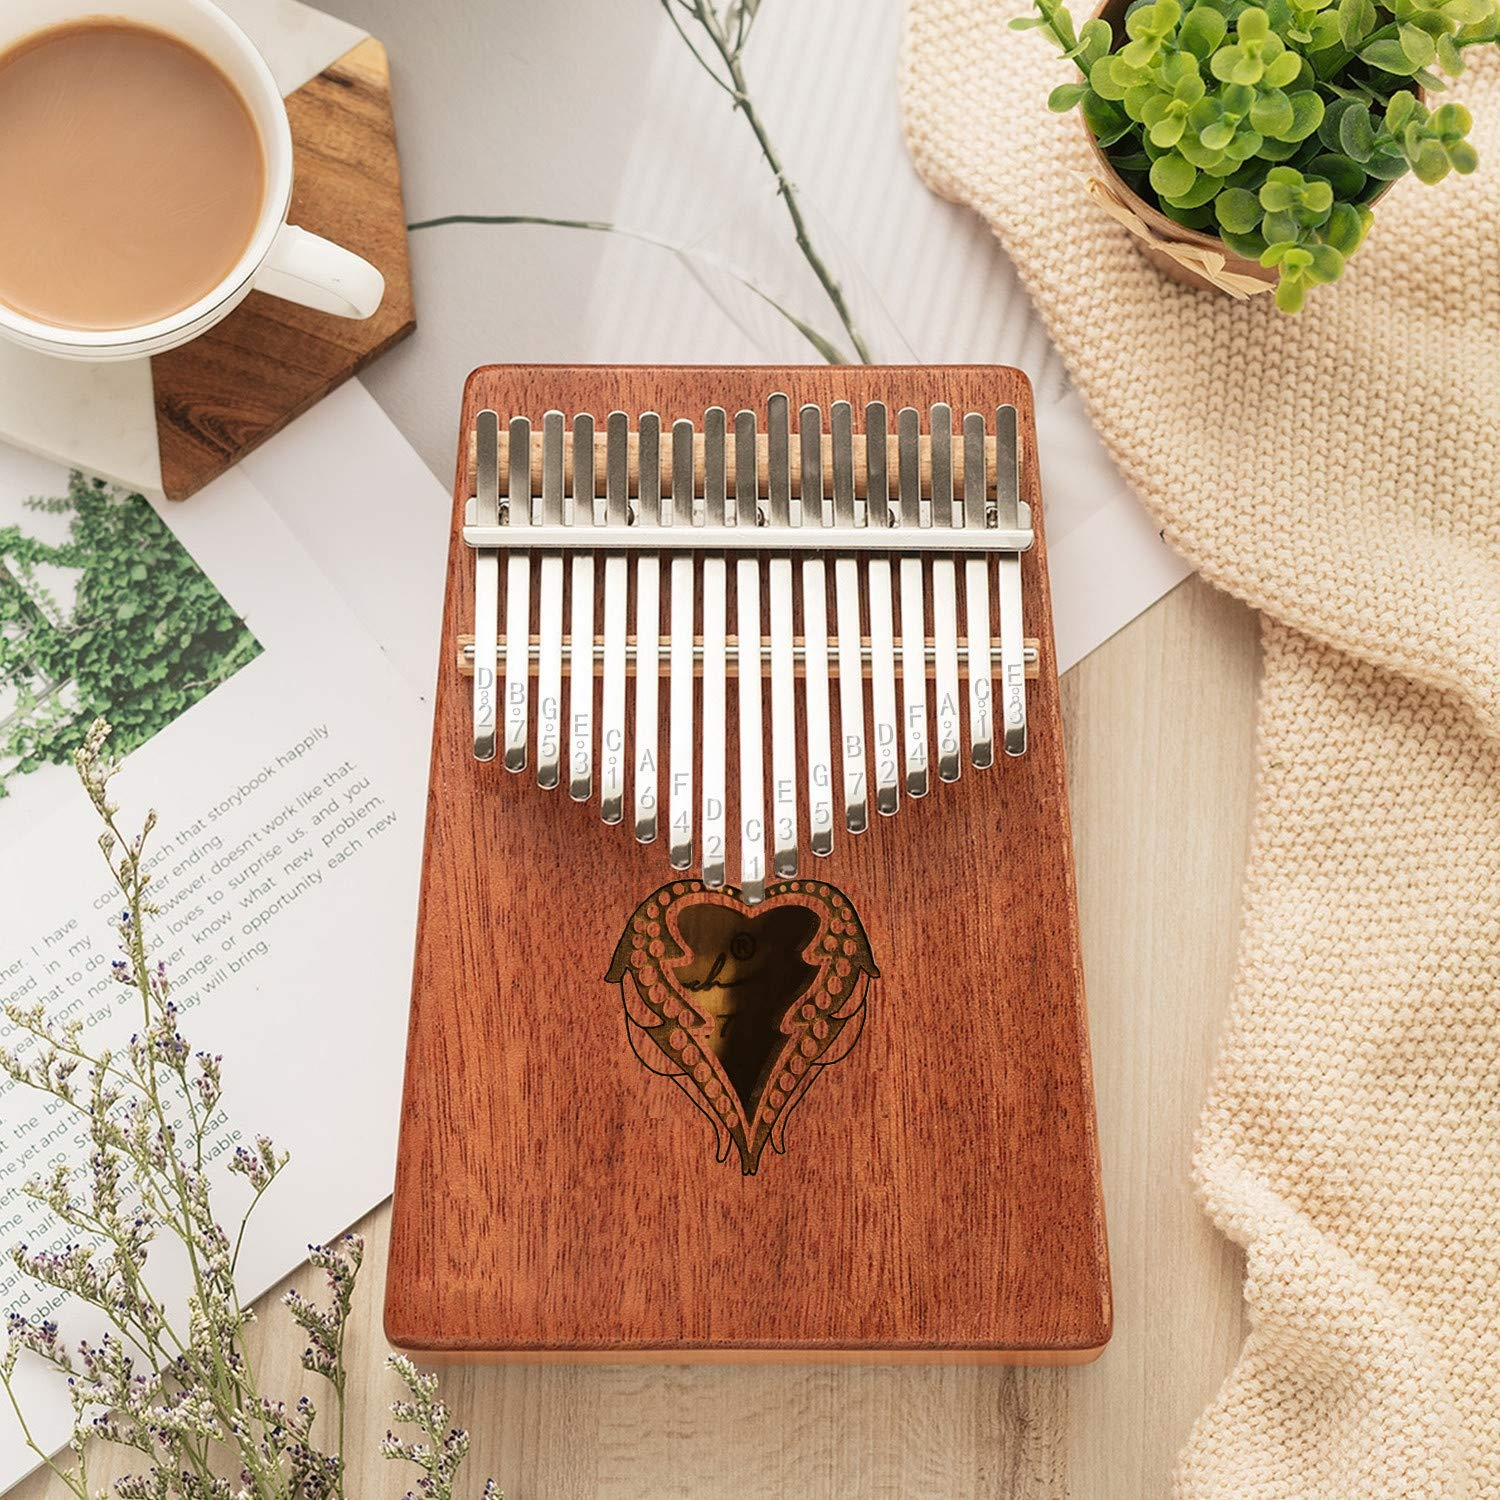 Thumb Piano Ranch Kalimba 17 keys Finger Mbira with Online 6 Free Lessons Solid Wood Mahogany Christmas Gifts with Bag/Carved Notation/Tune Hammer - Love Heart by Ranch (Image #2)